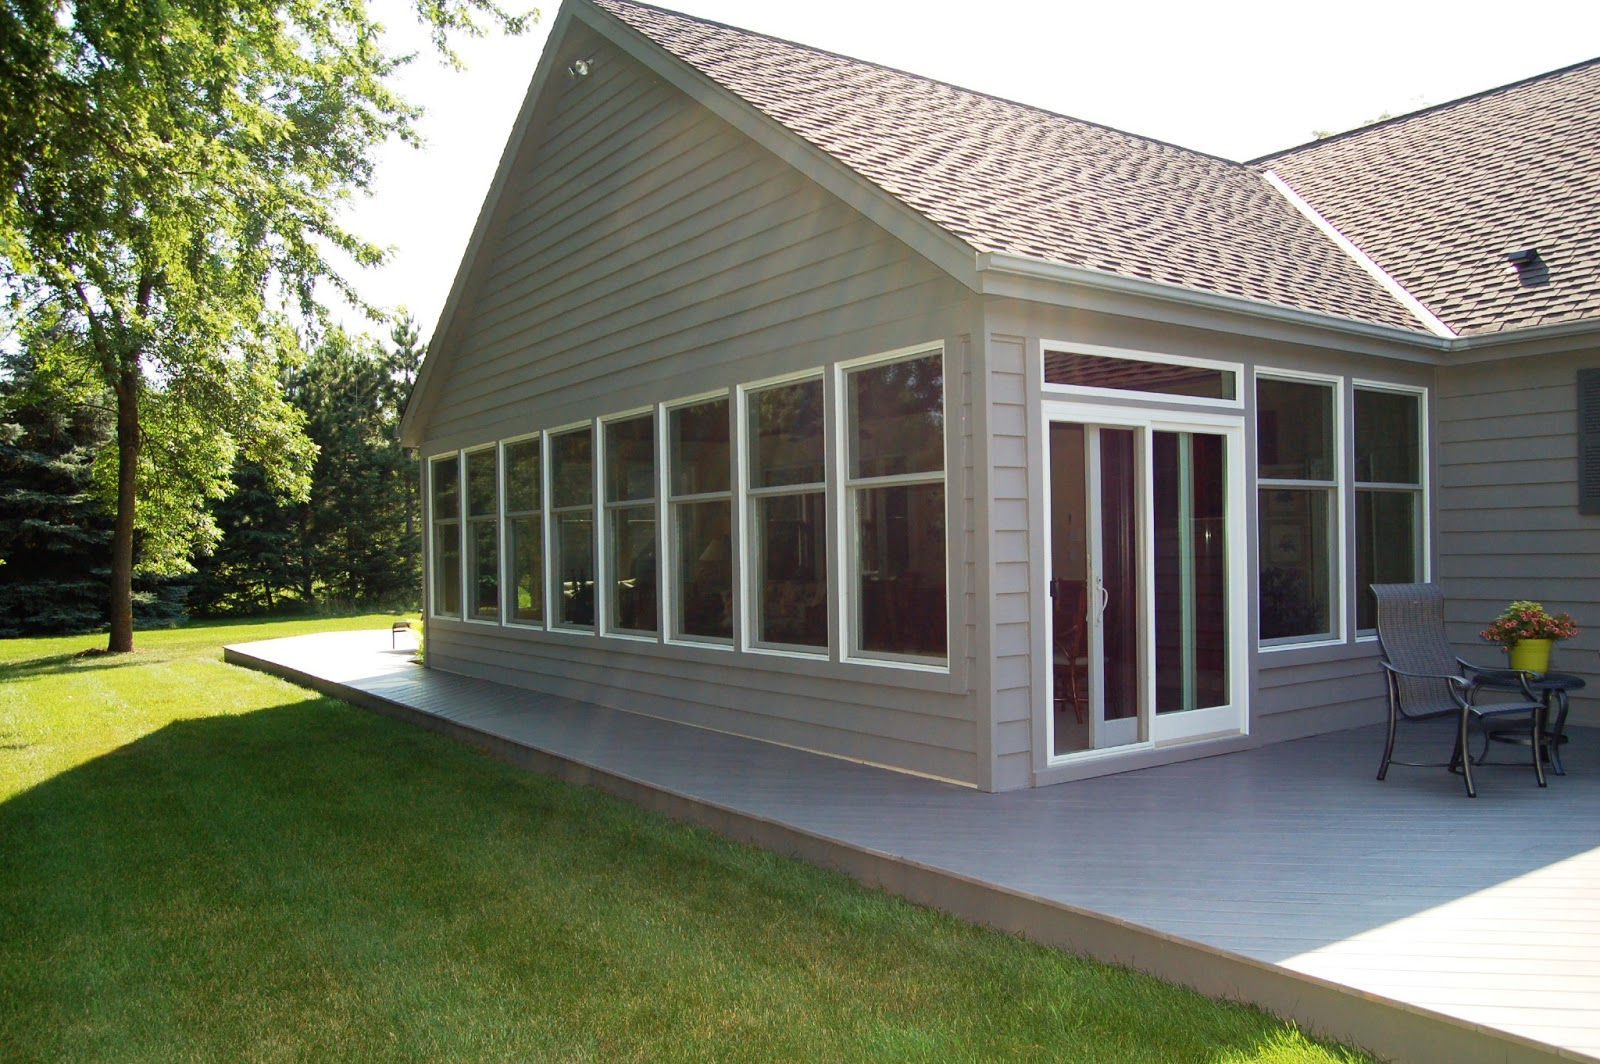 Siding choices help homes operate properly callen for Siding choices